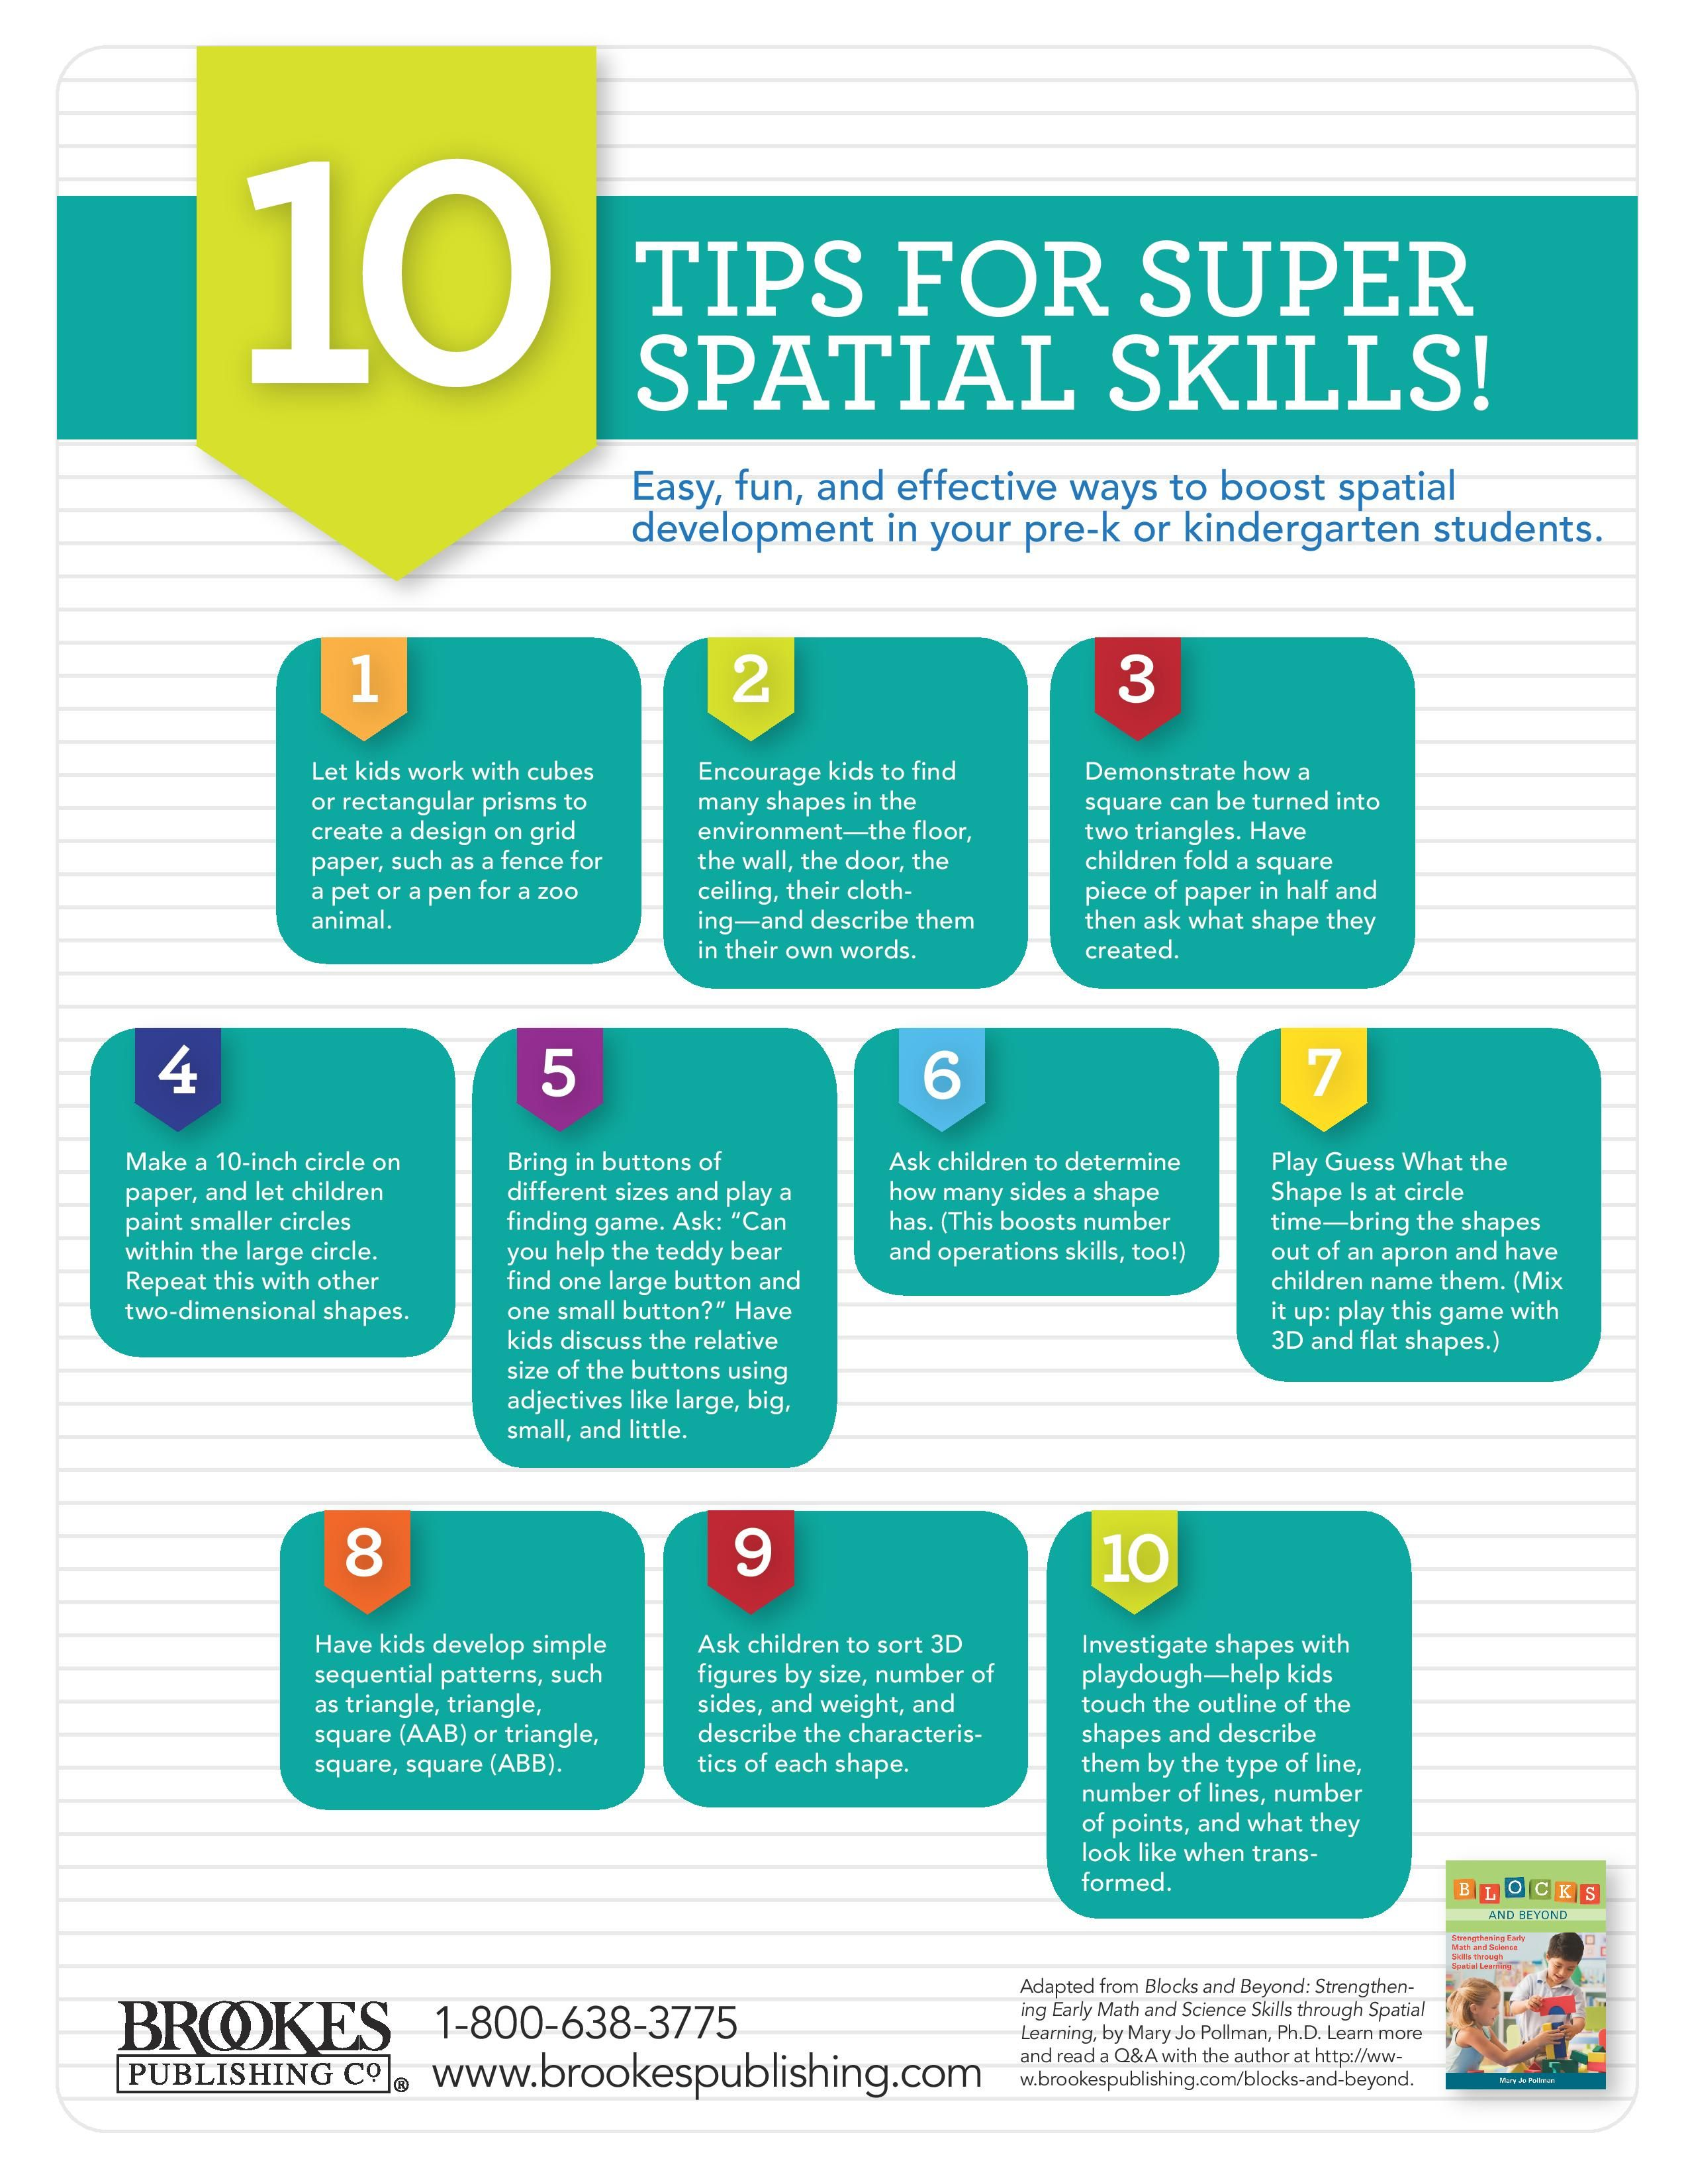 10 Tips For Super Spatial Skills Great For Early Ed